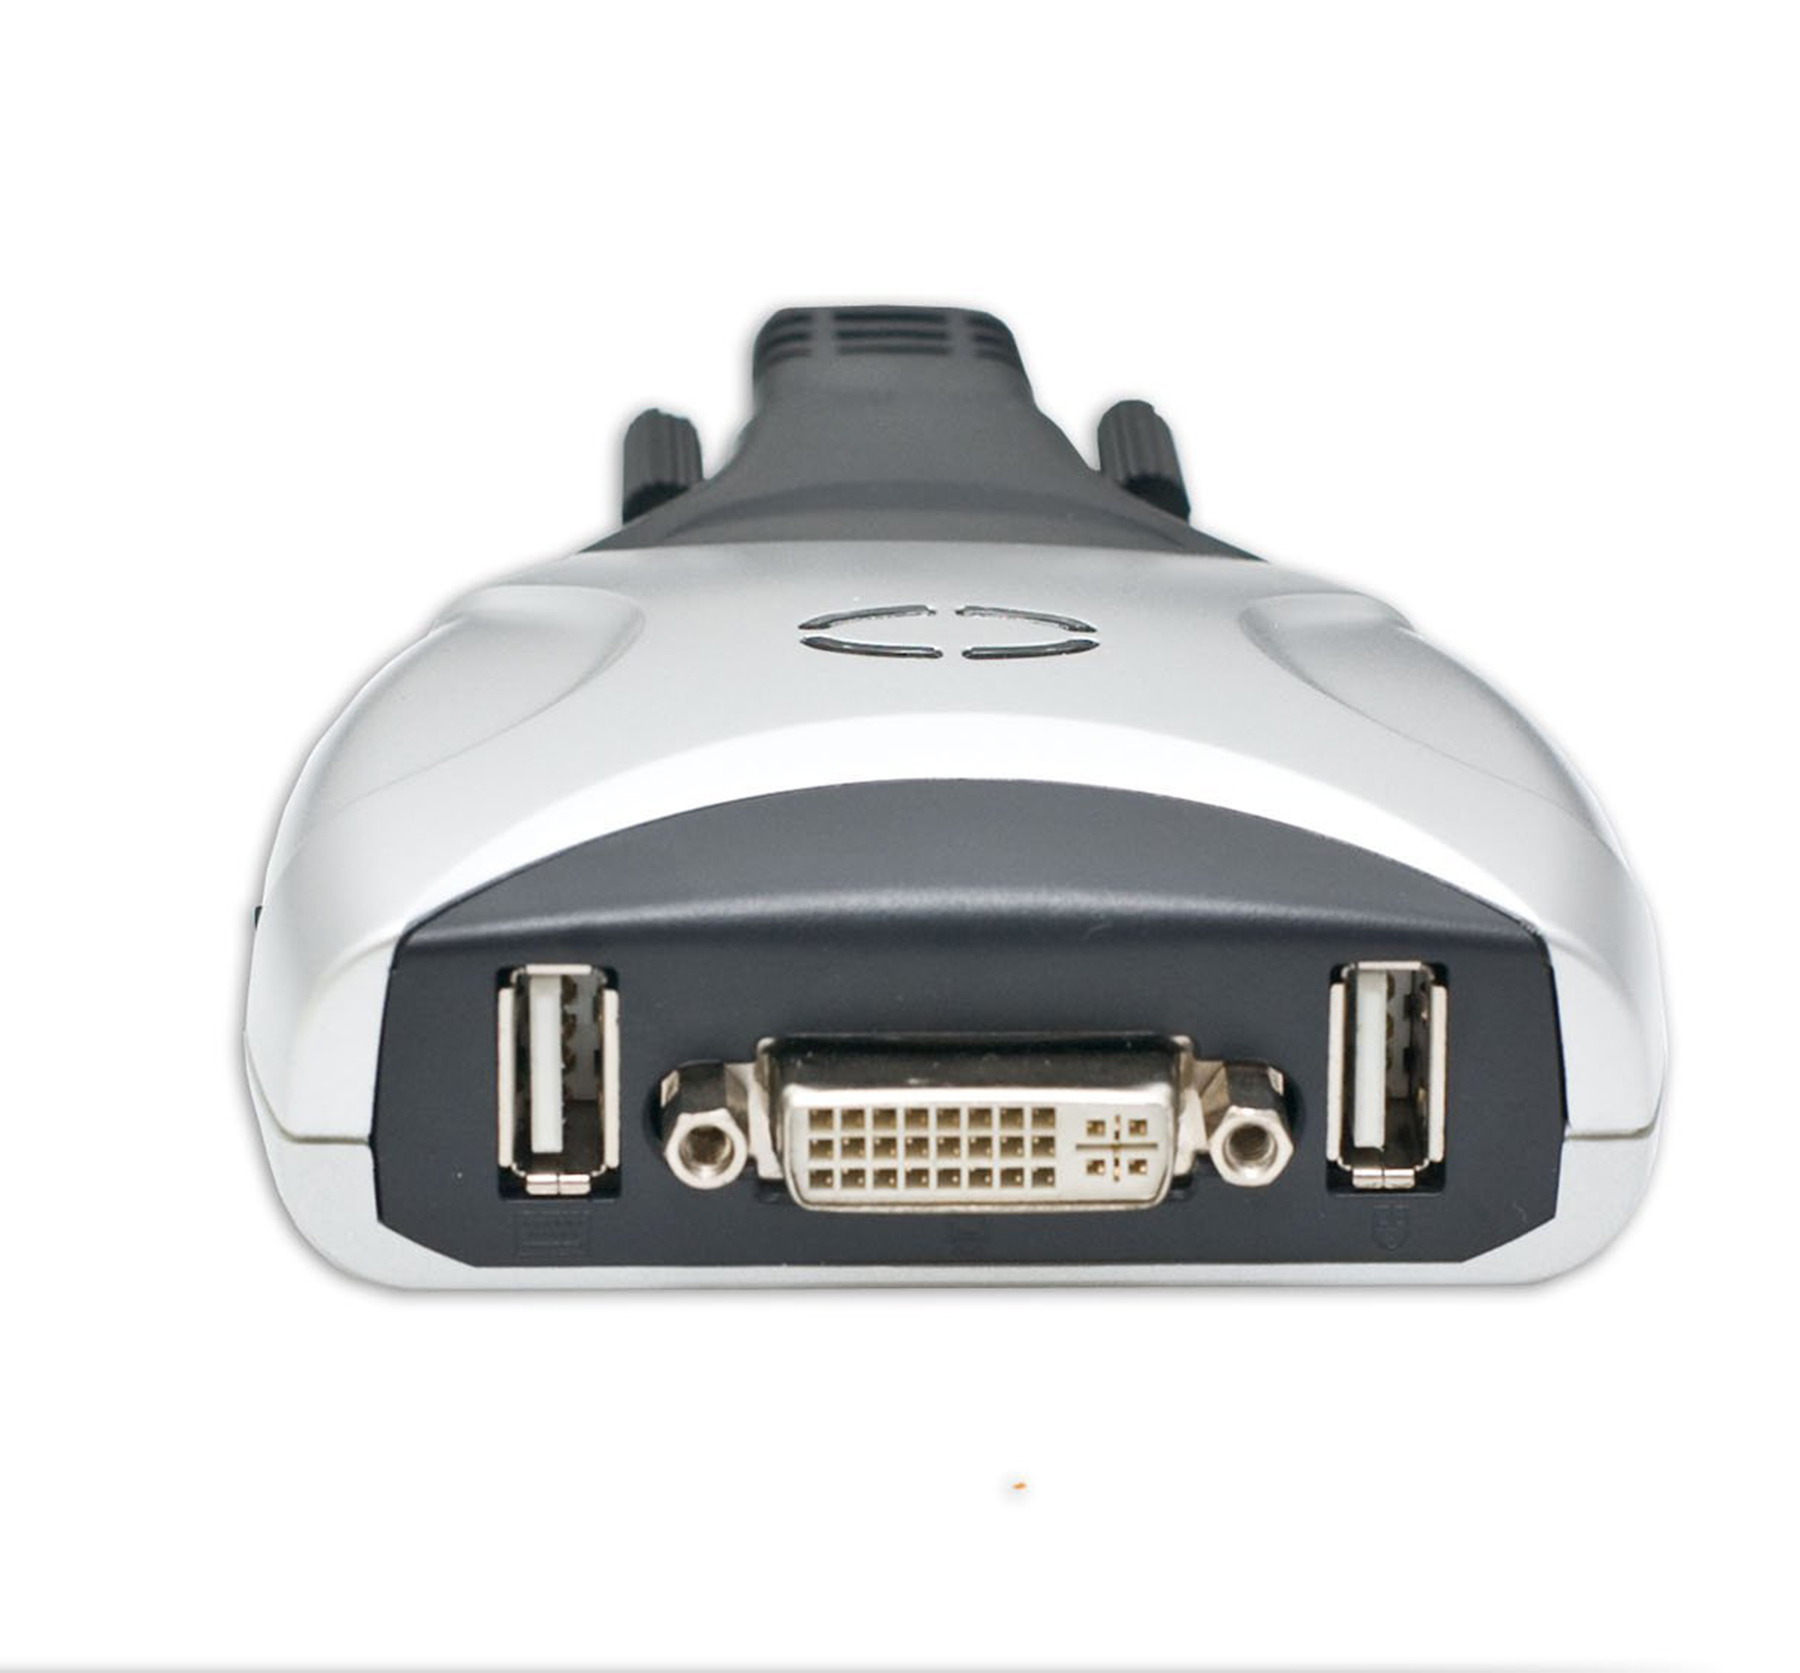 2 Port DVI KVM Switch With USB 20 And Audio Support